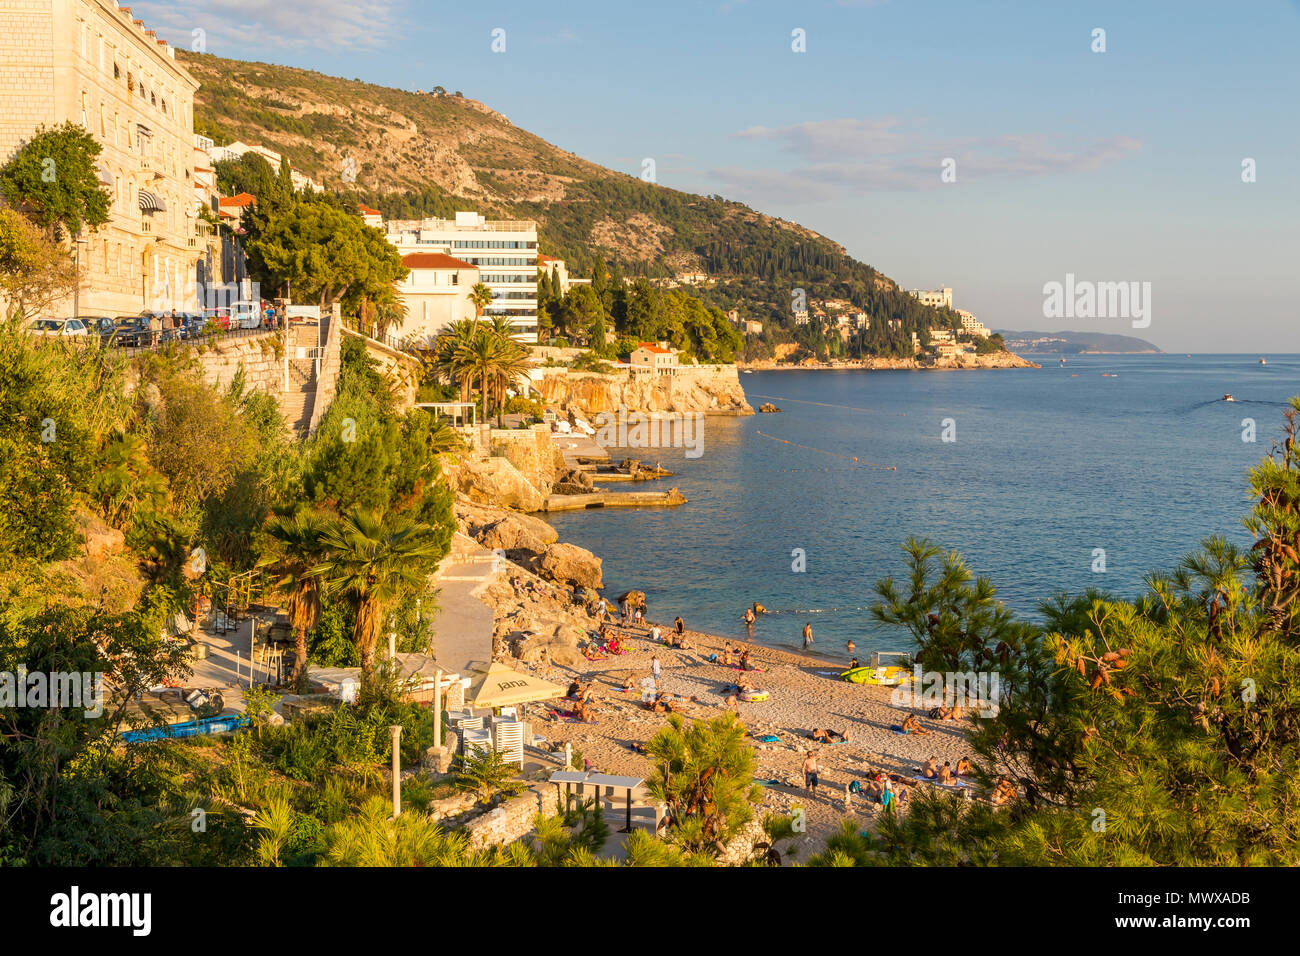 View over Banje Beach outside the old town of Dubrovnik, Croatia, Europe Stock Photo